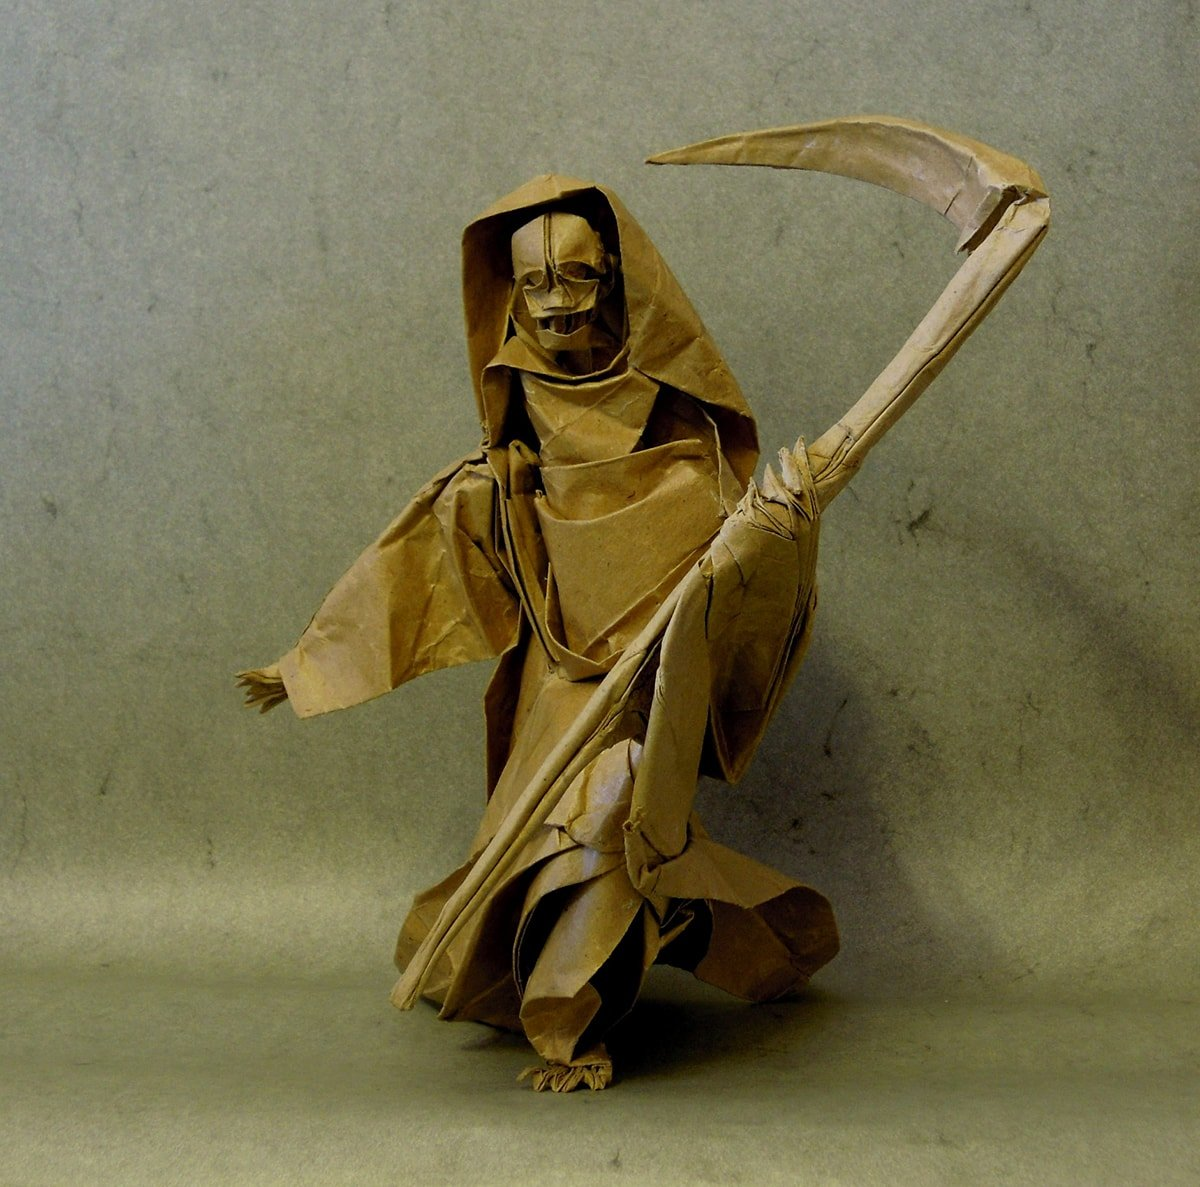 Origami Grim Reaper by Dzmitry Lysiuk